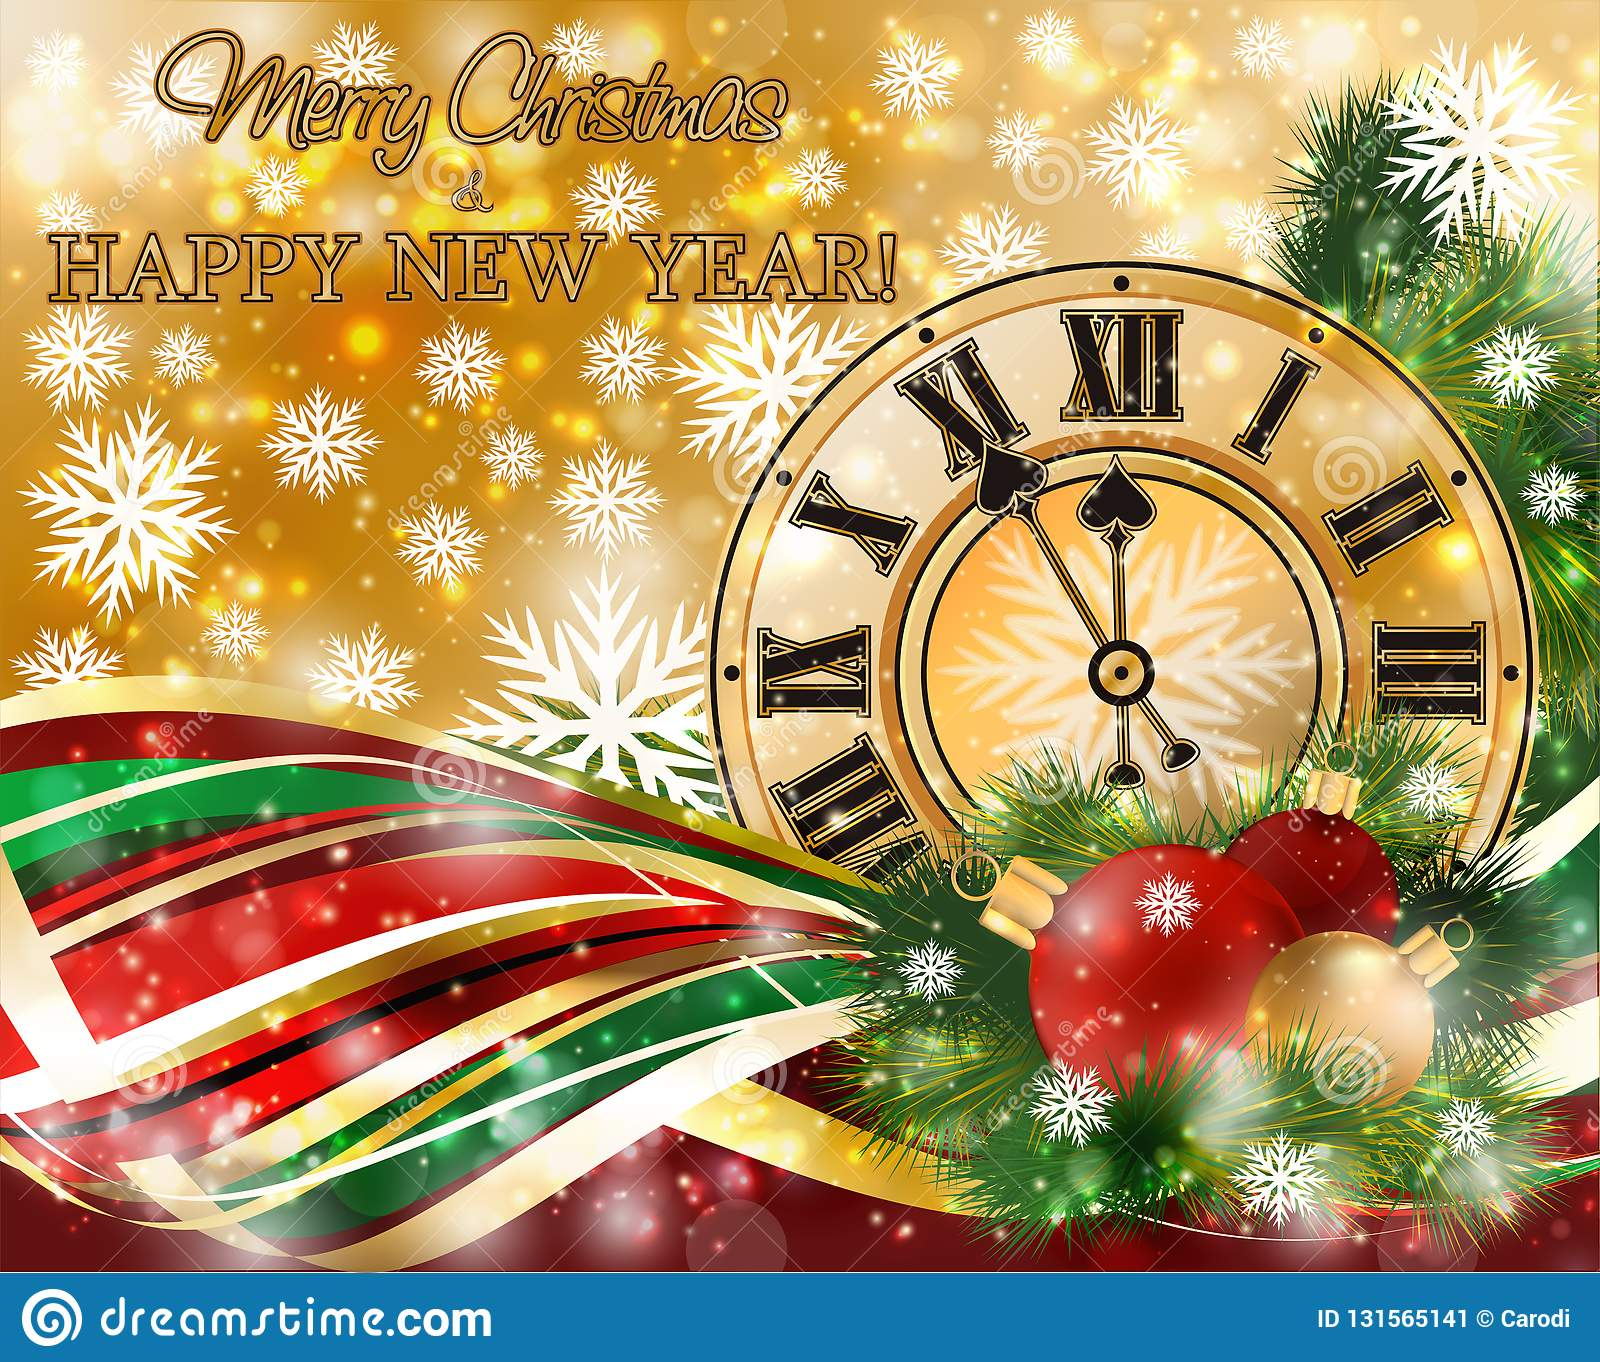 merry christmas new year banner with xmas clock